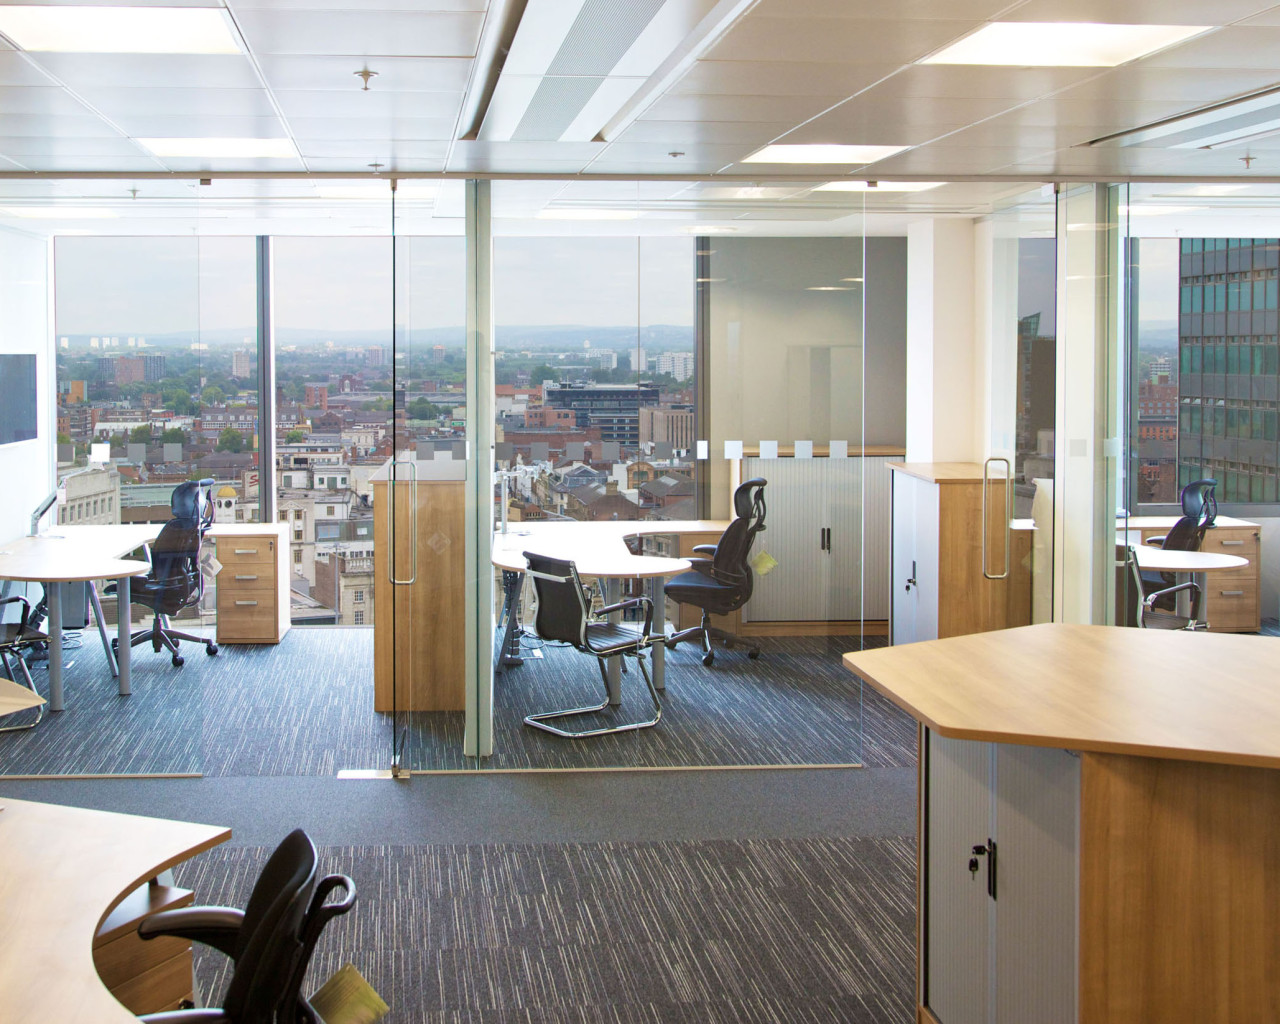 Office space planning design bolton manchester cheshire for Interior design space planning questionnaire